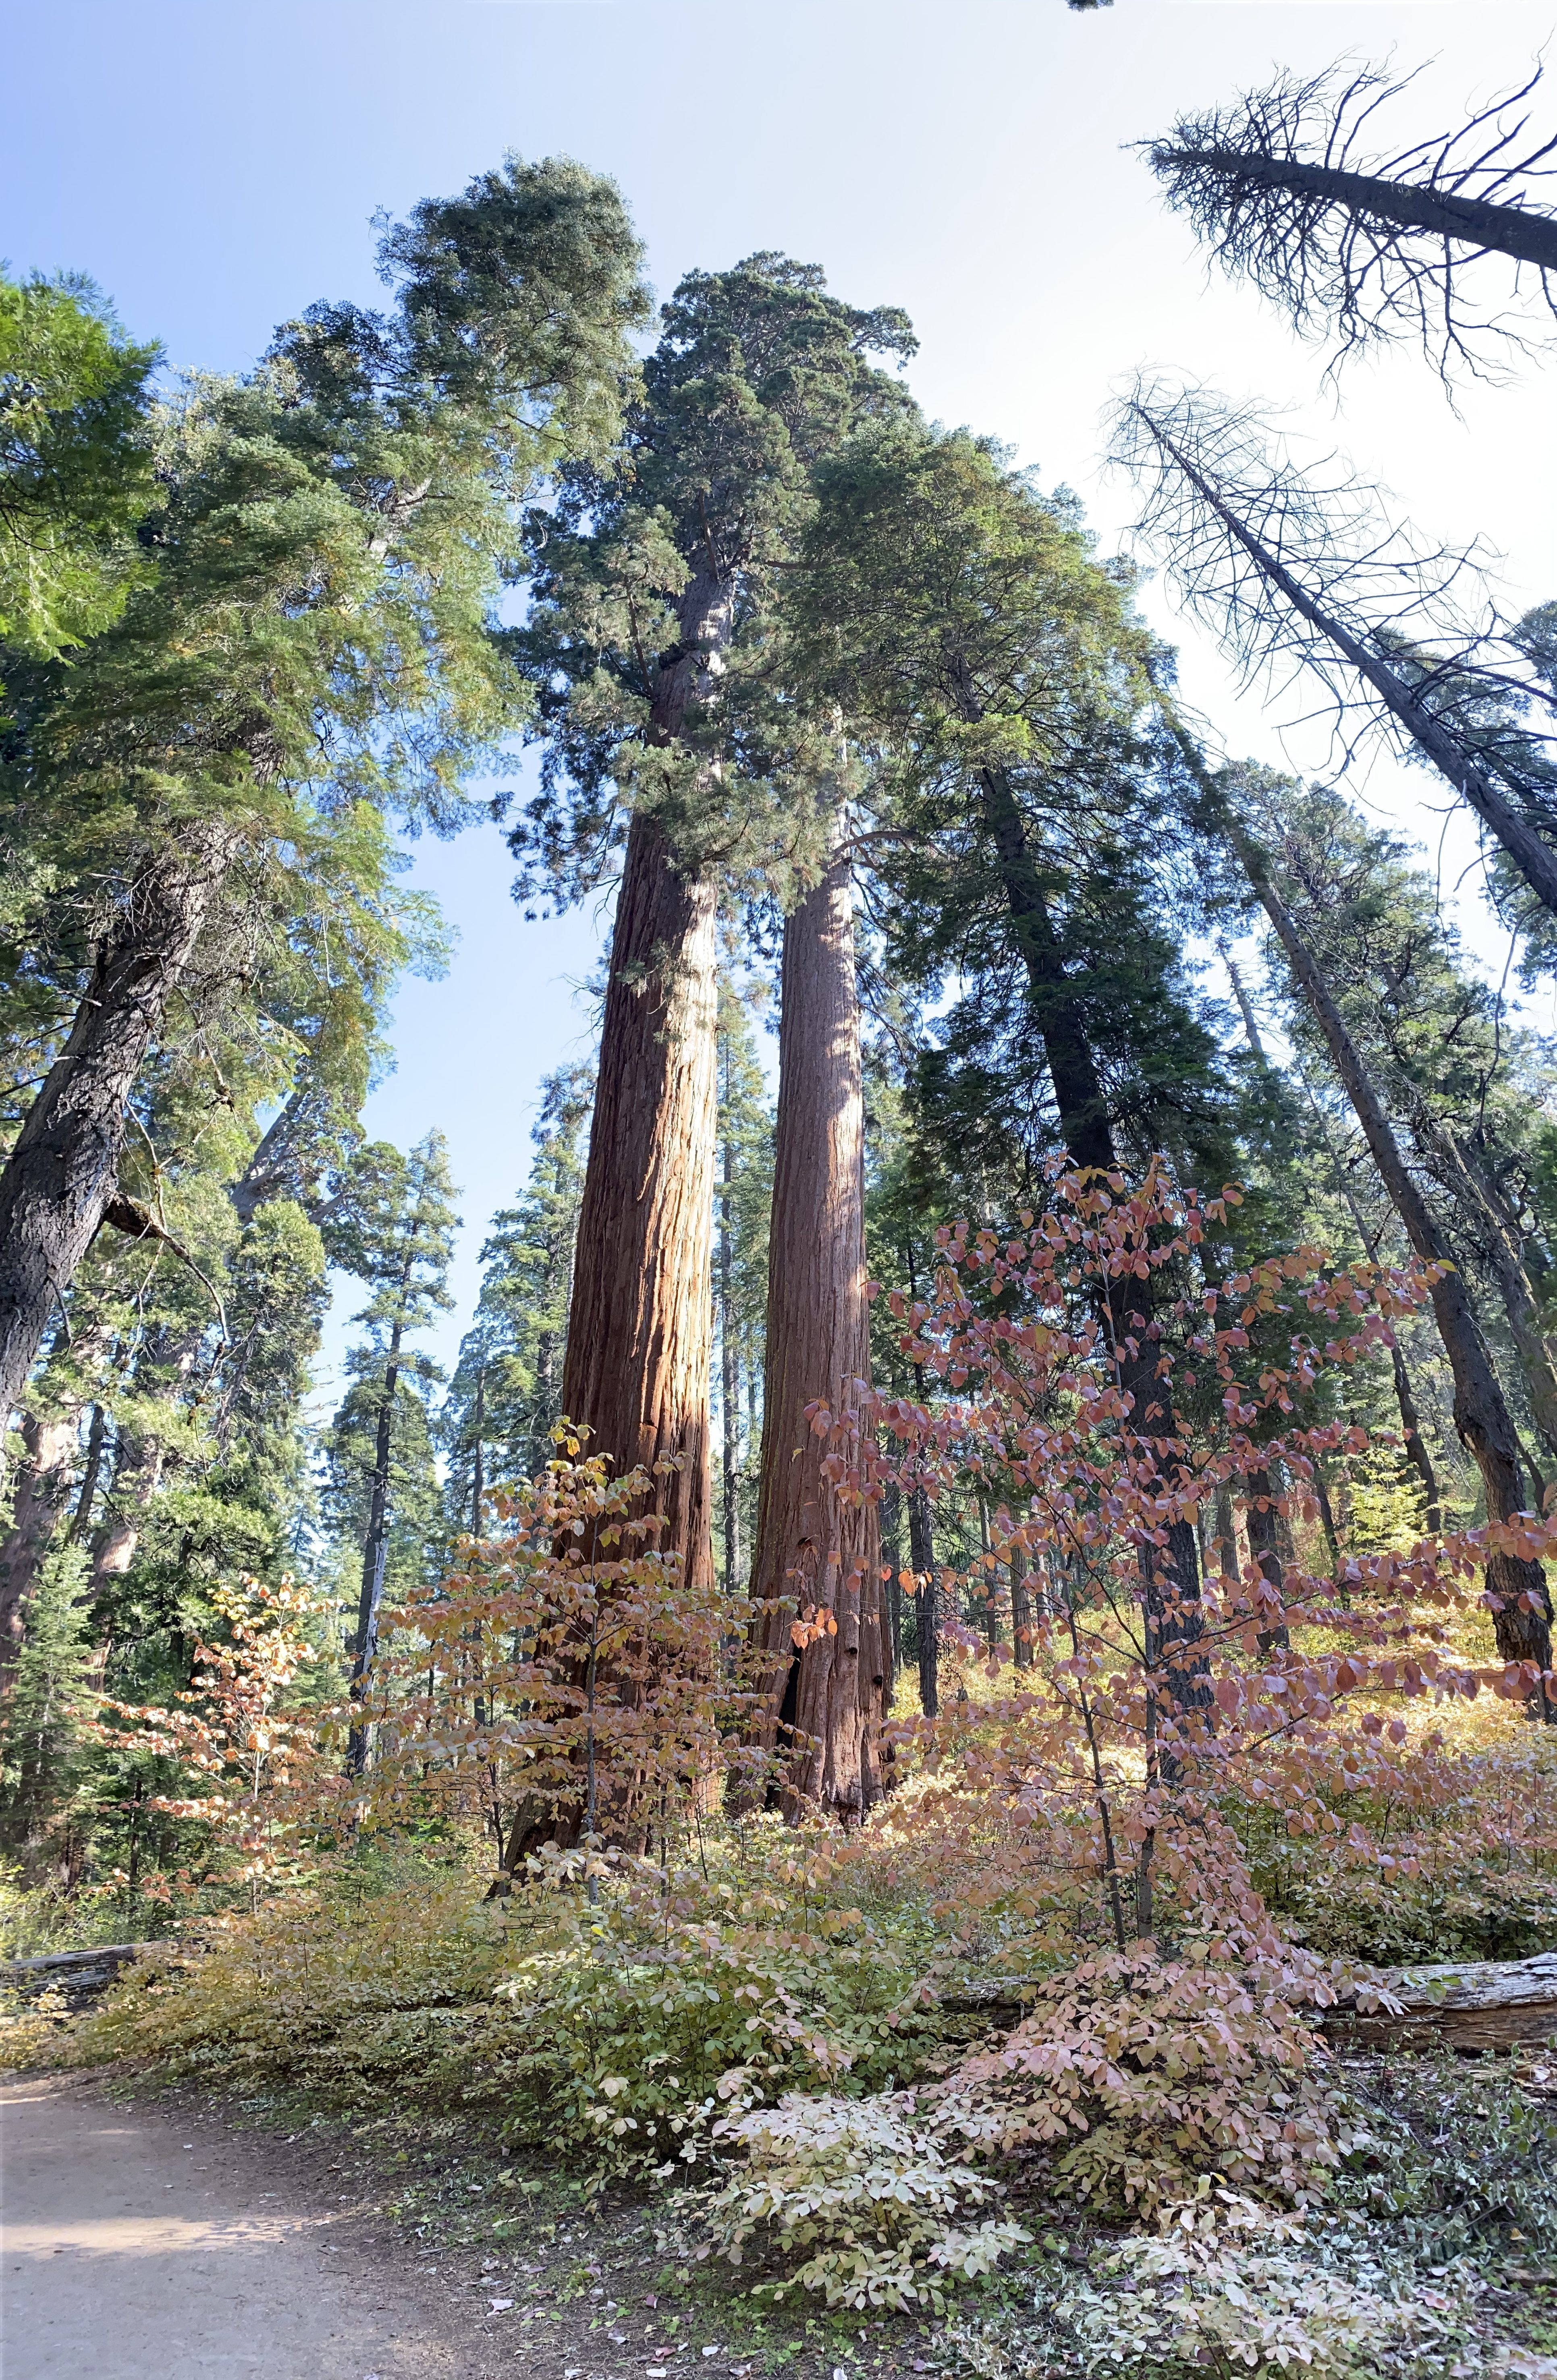 One of the huge Sequoias at Big Trees State Park.